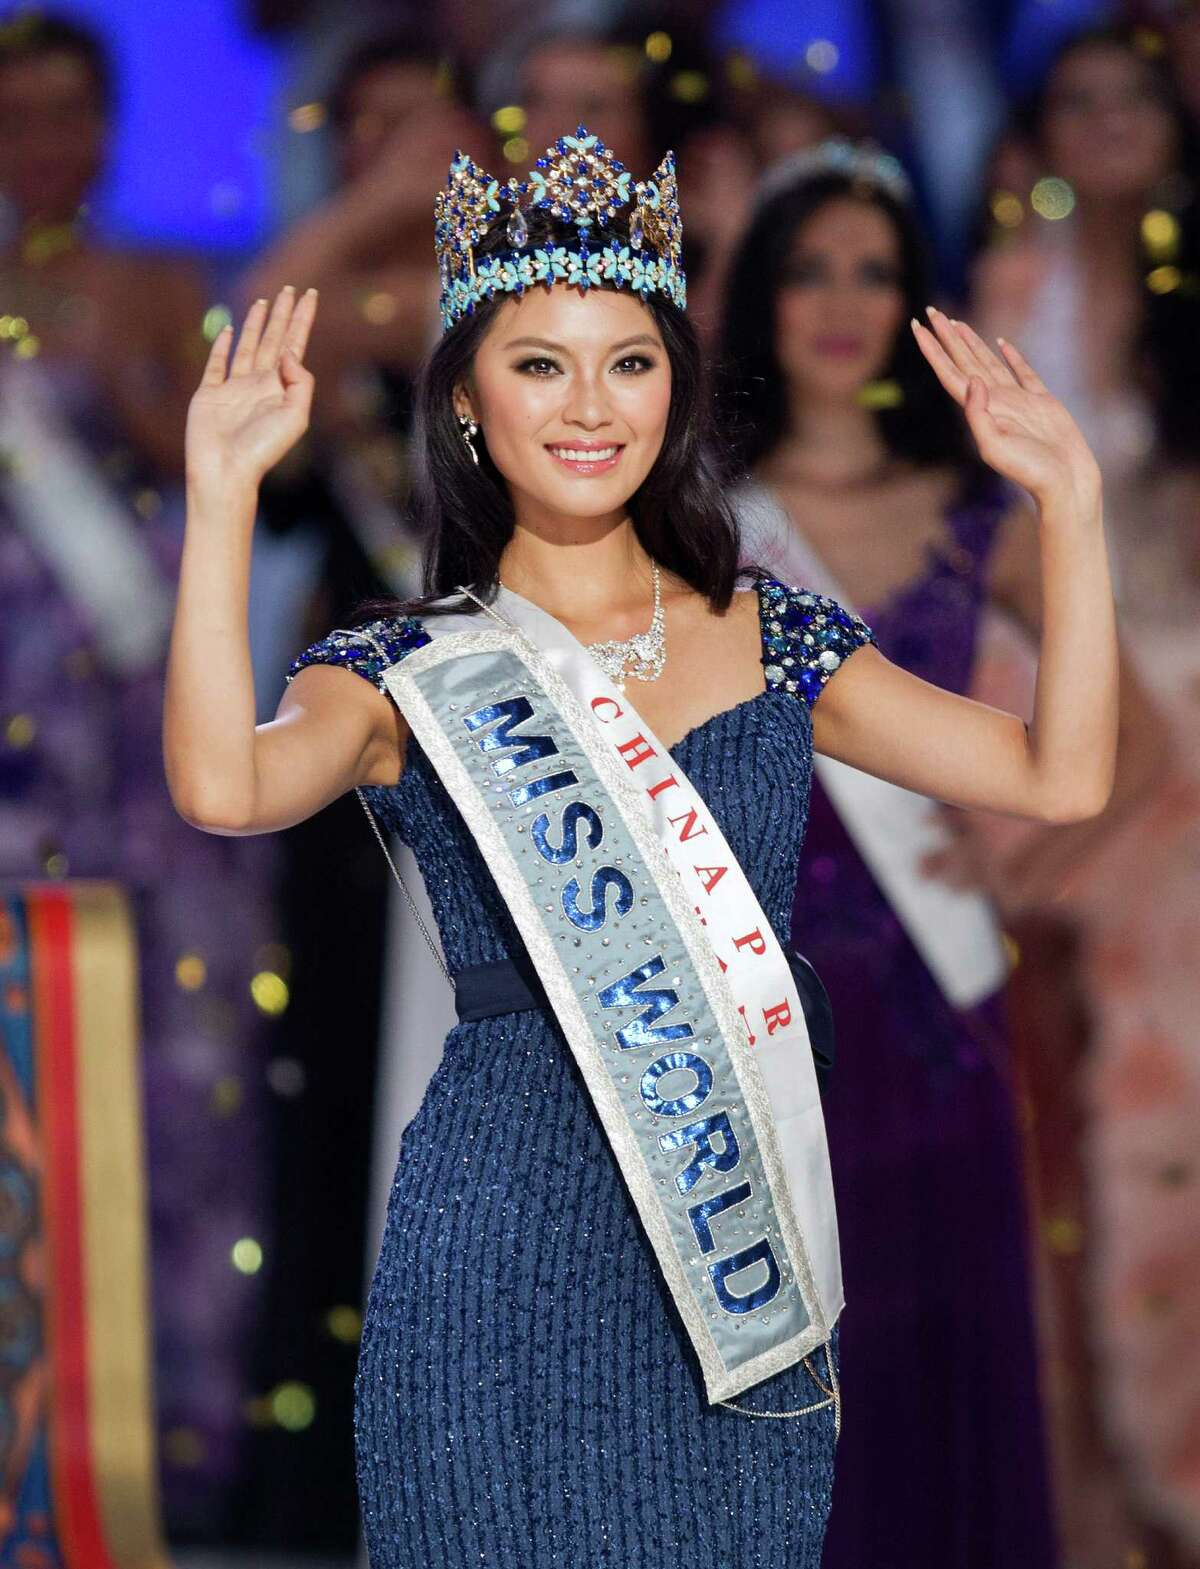 Newly crowned Miss World Yu Wenxia of China acknowledges the audience after being crowned Miss World 2012 at the Ordos Stadium Arena in inner Mongolia, China, on Saturday, Aug. 18, 2012. Wenxia of China defeated more than 100 other hopefuls at the glittering ceremony.